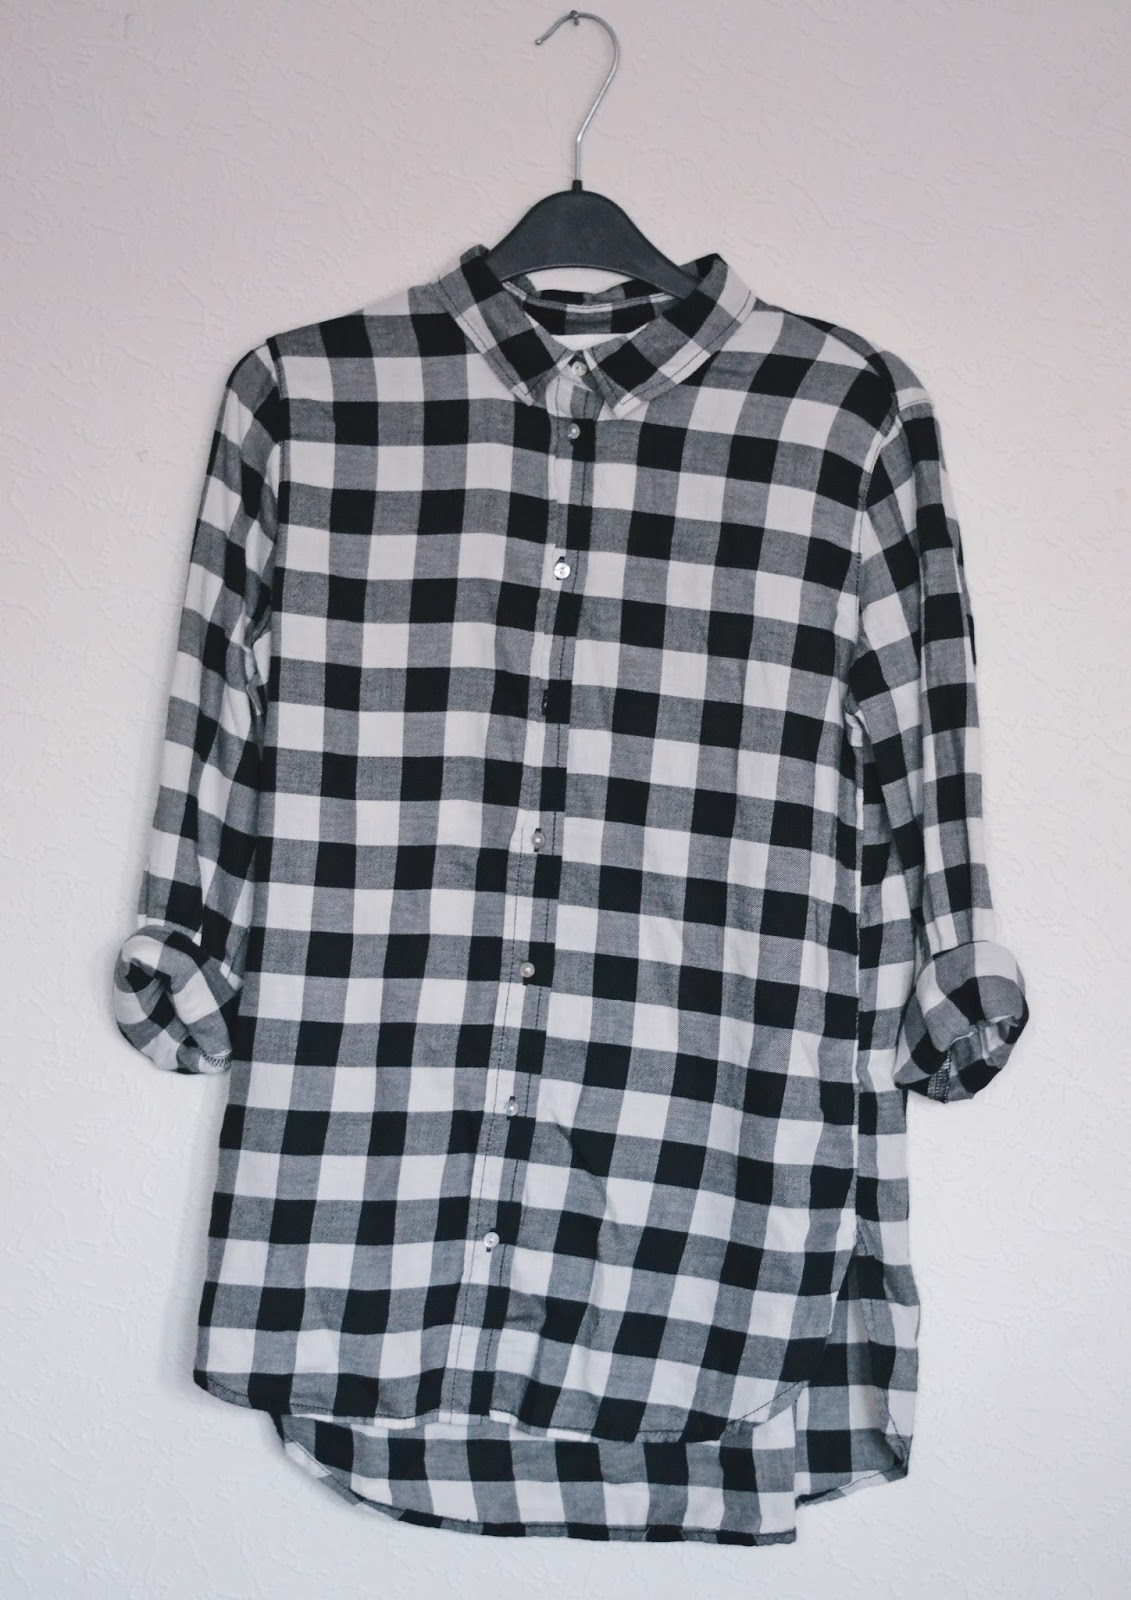 h&m monochrome check shirt